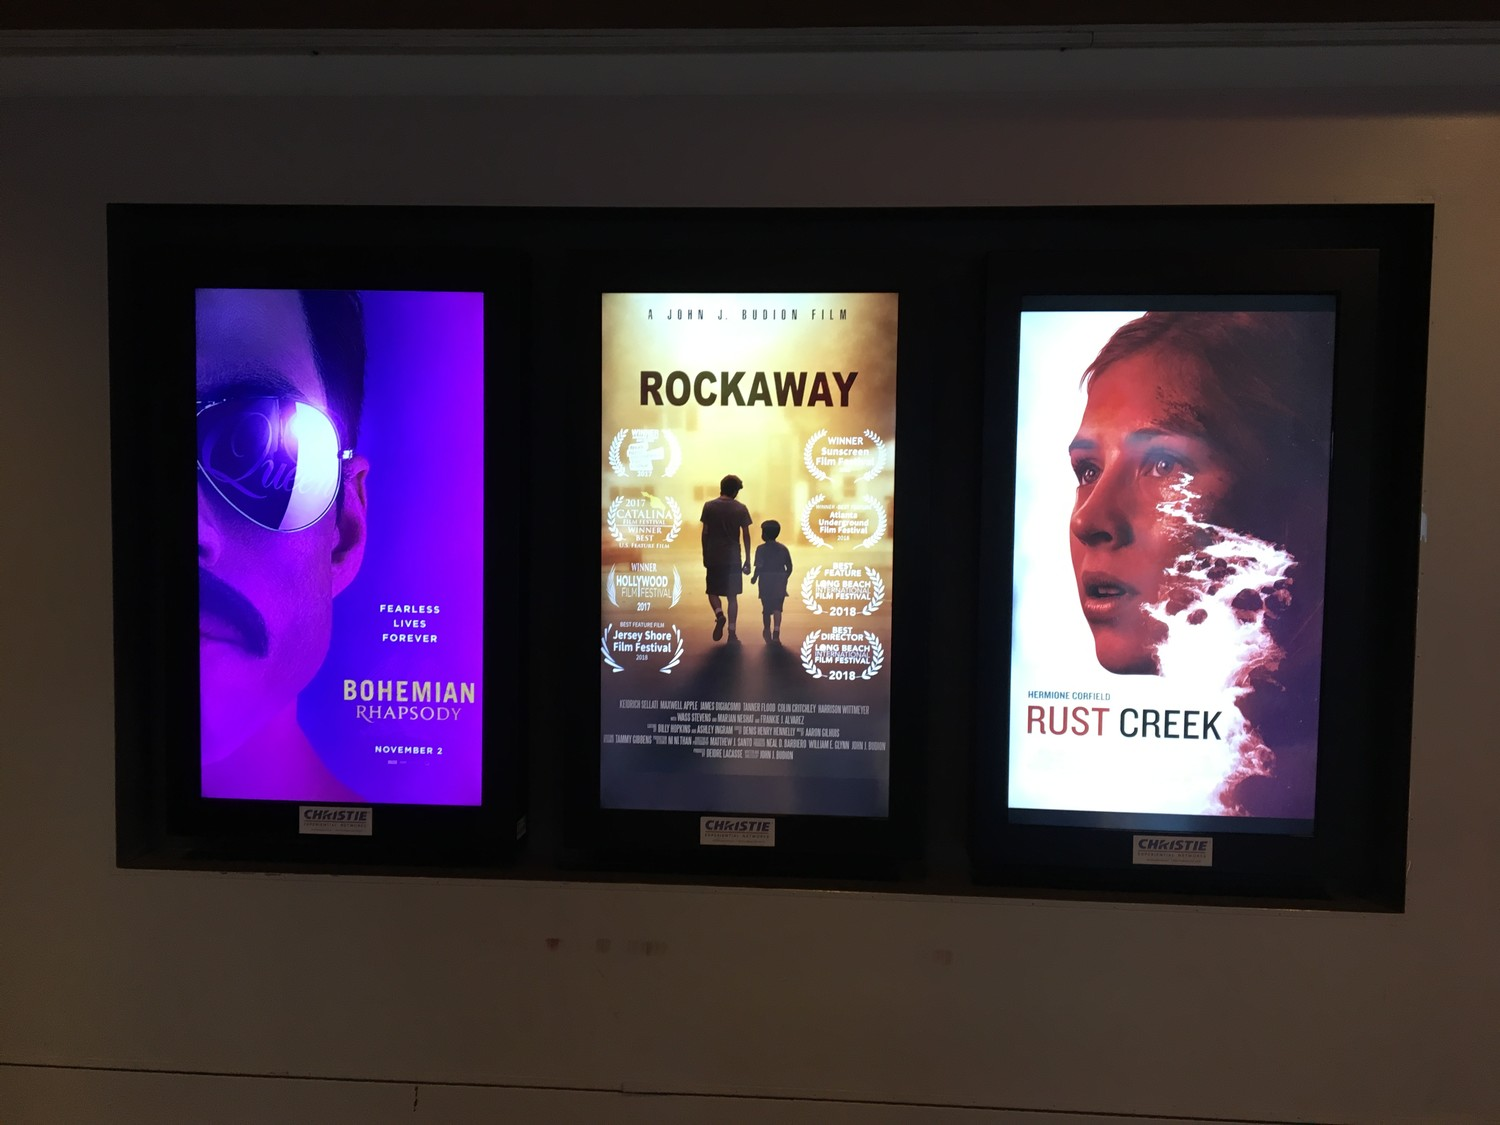 "In New York City, ""Rockaway"" was screened in theaters alongside the likes of ""Bohemian Rhapsody,"" which is a nominee for Best Picture at the Academy Awards."